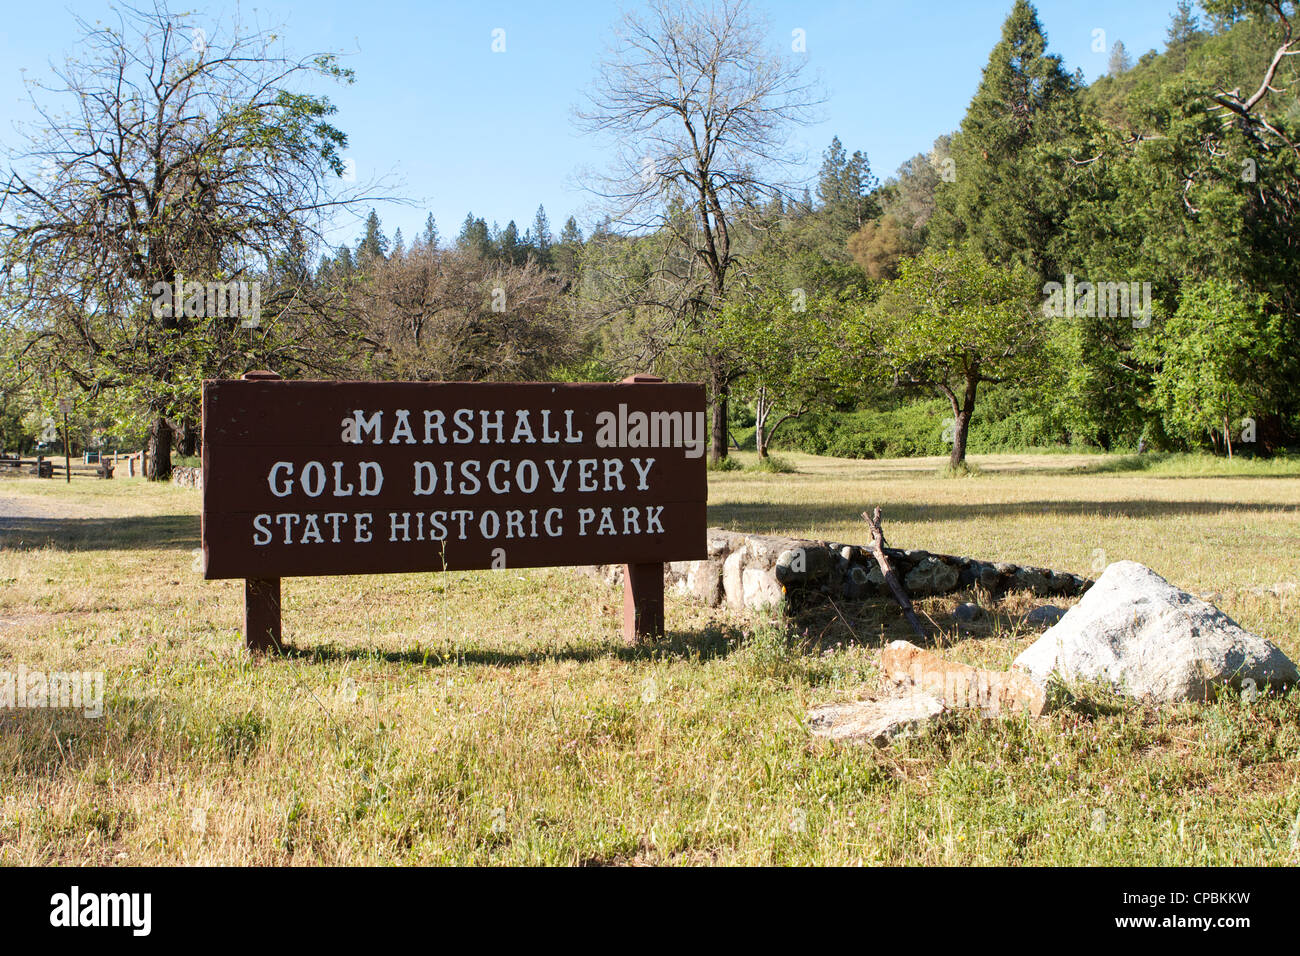 Marshall Gold Discovery state historic park Sutter's Mill, California, USA - Stock Image